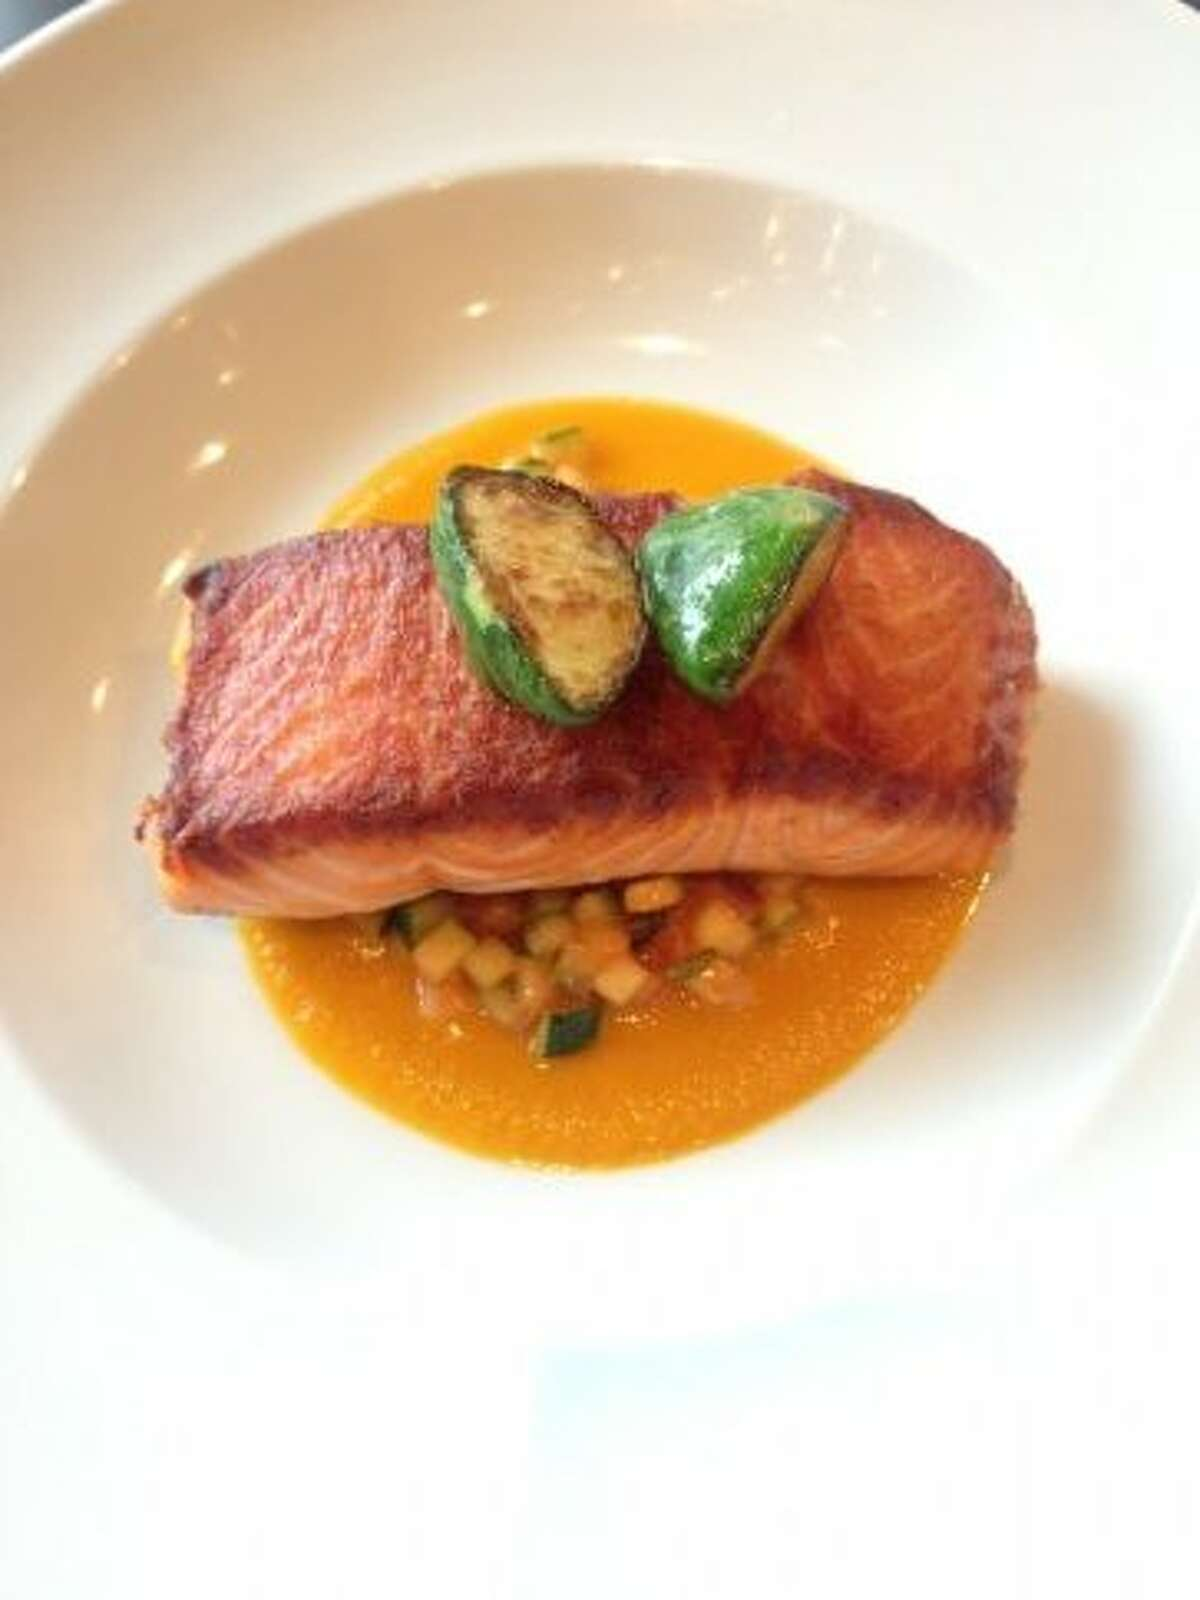 Roasted salmon with squash succotash and heirloom tomato reduction.